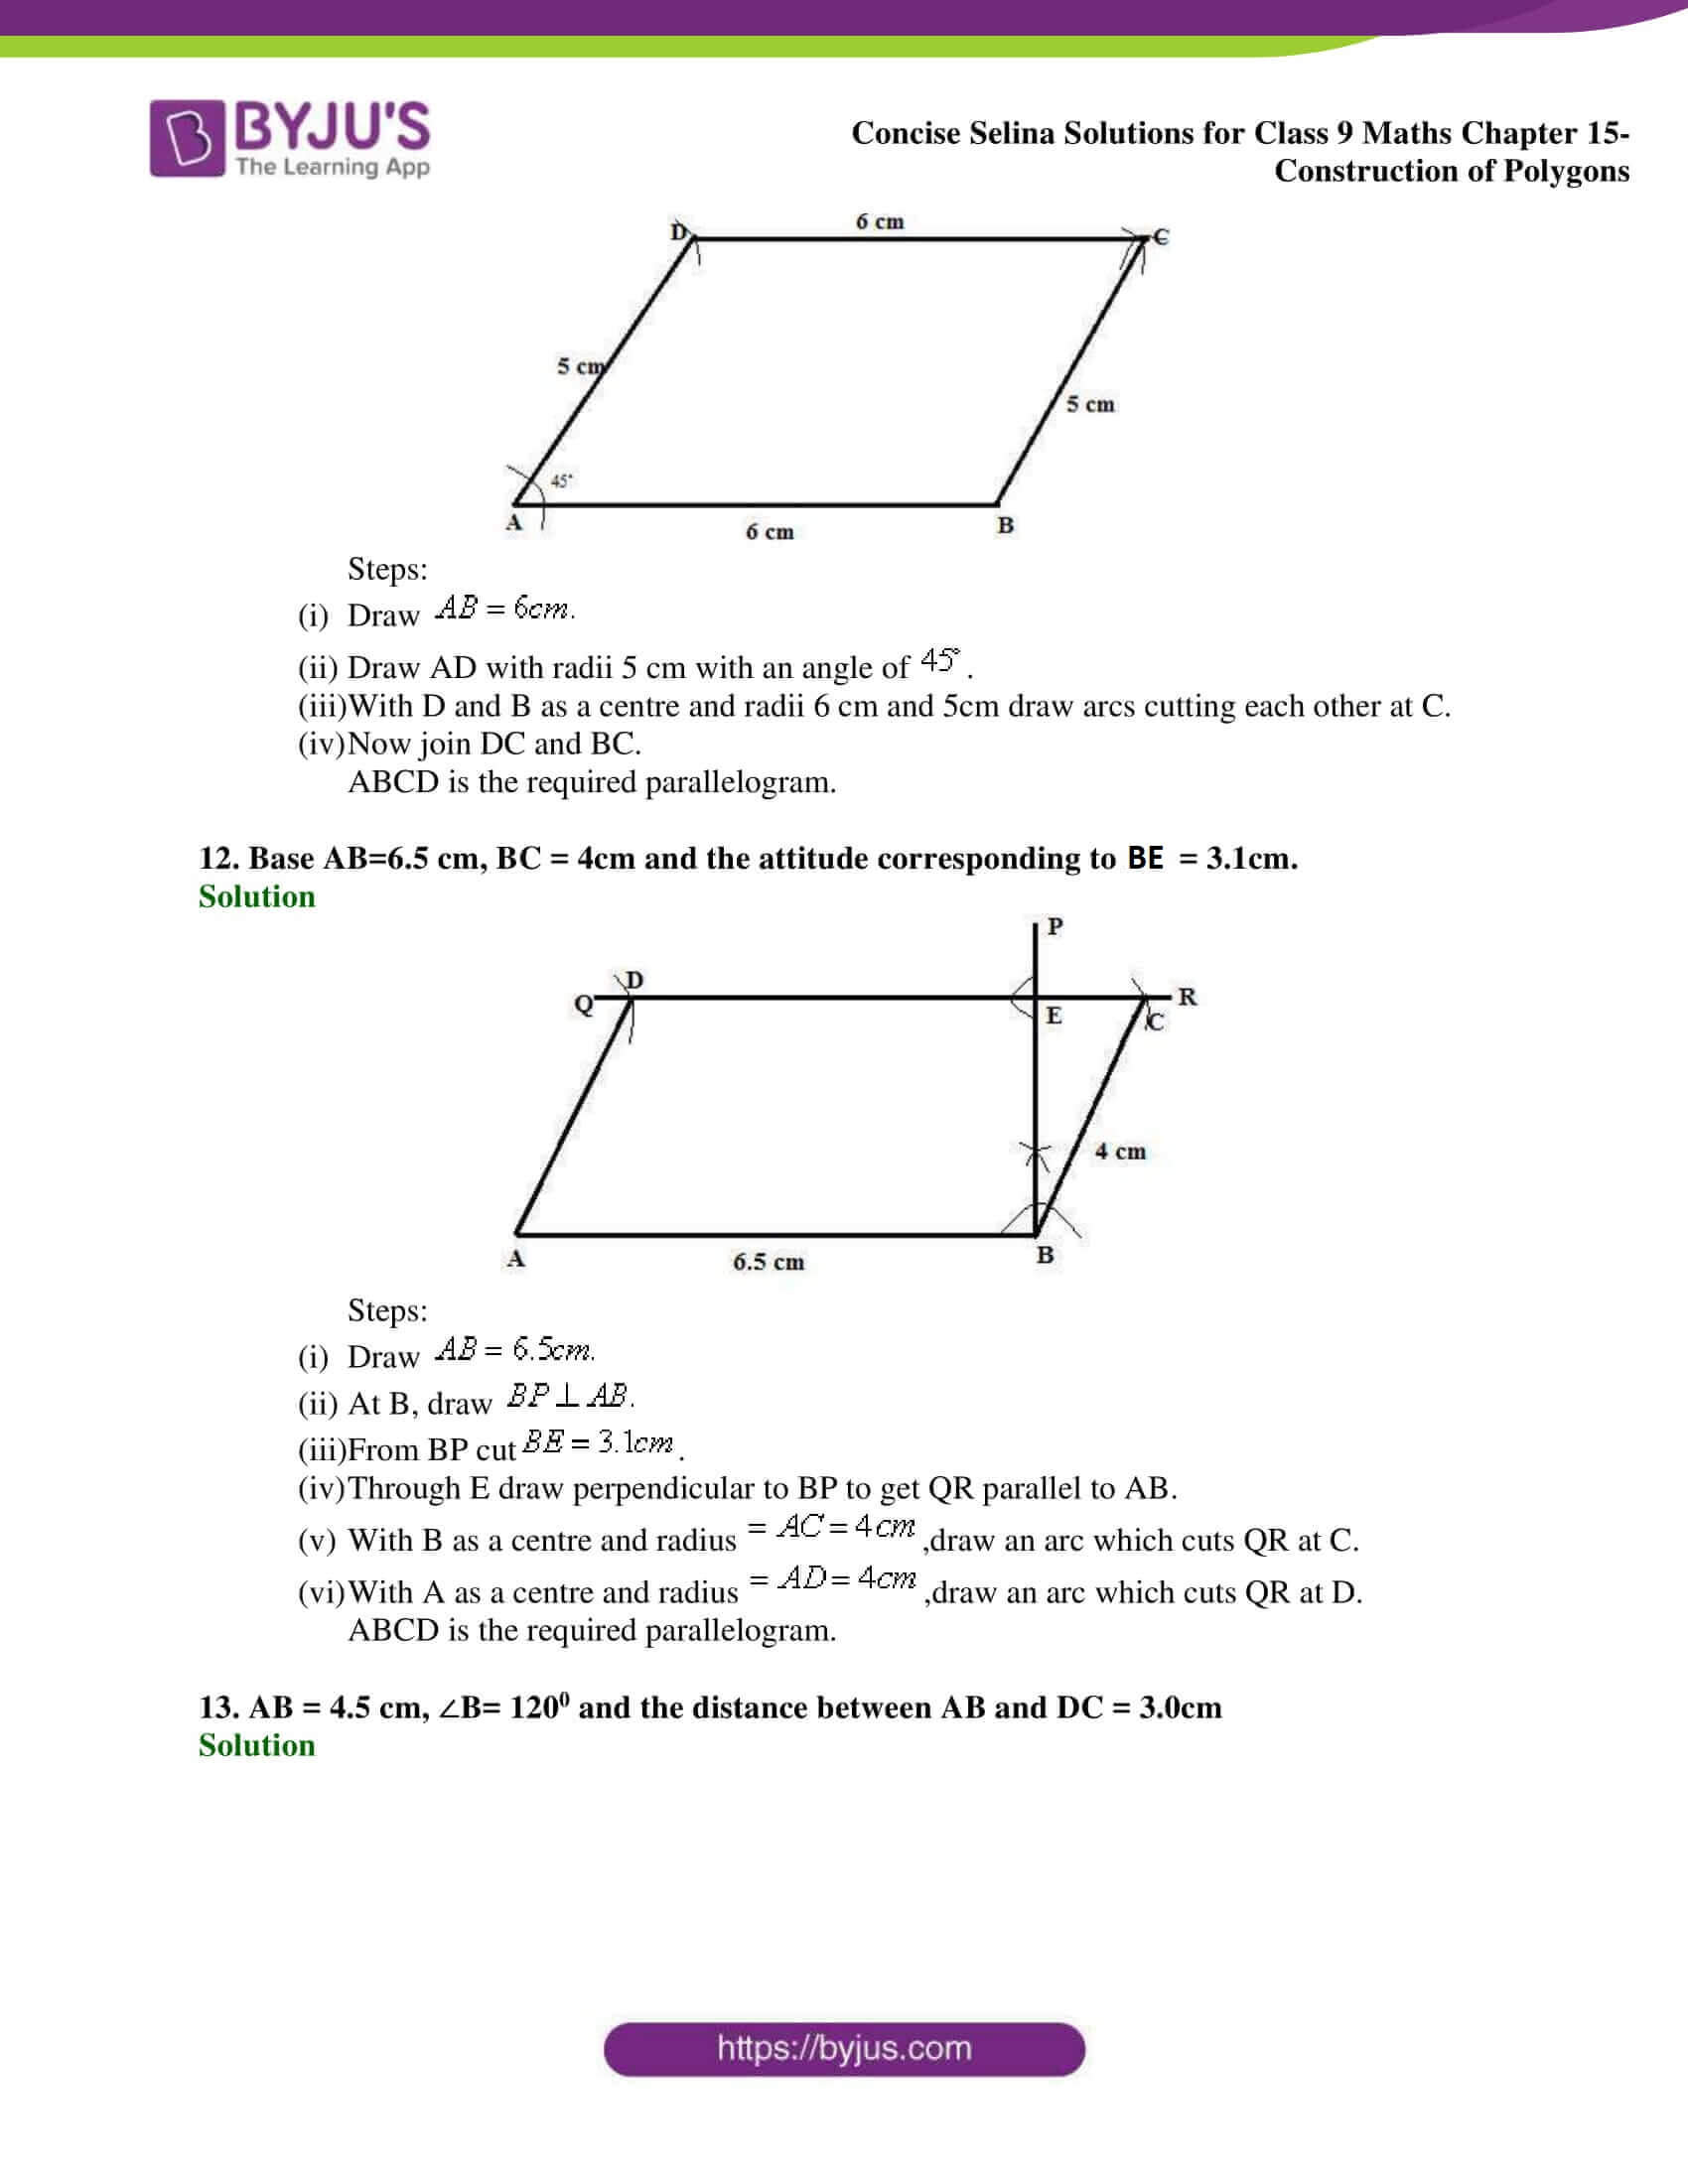 selina Solutions for Class 9 Maths Chapter 15 part 06